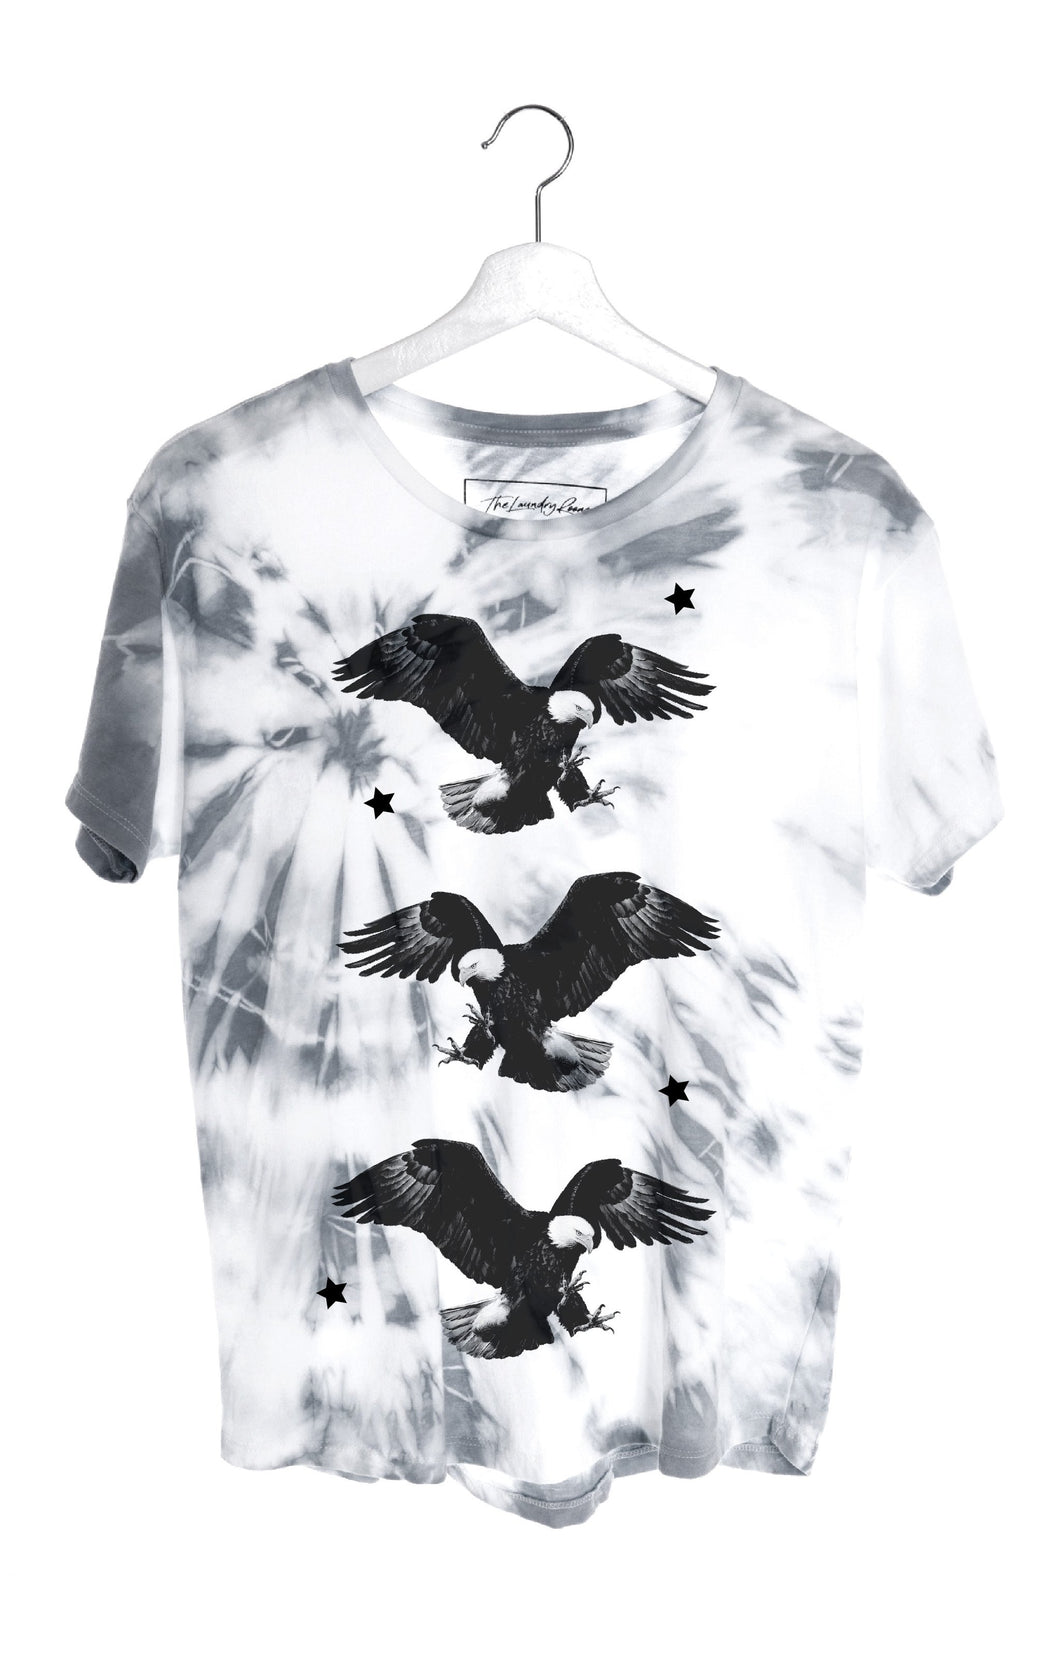 tlr soar classic tee